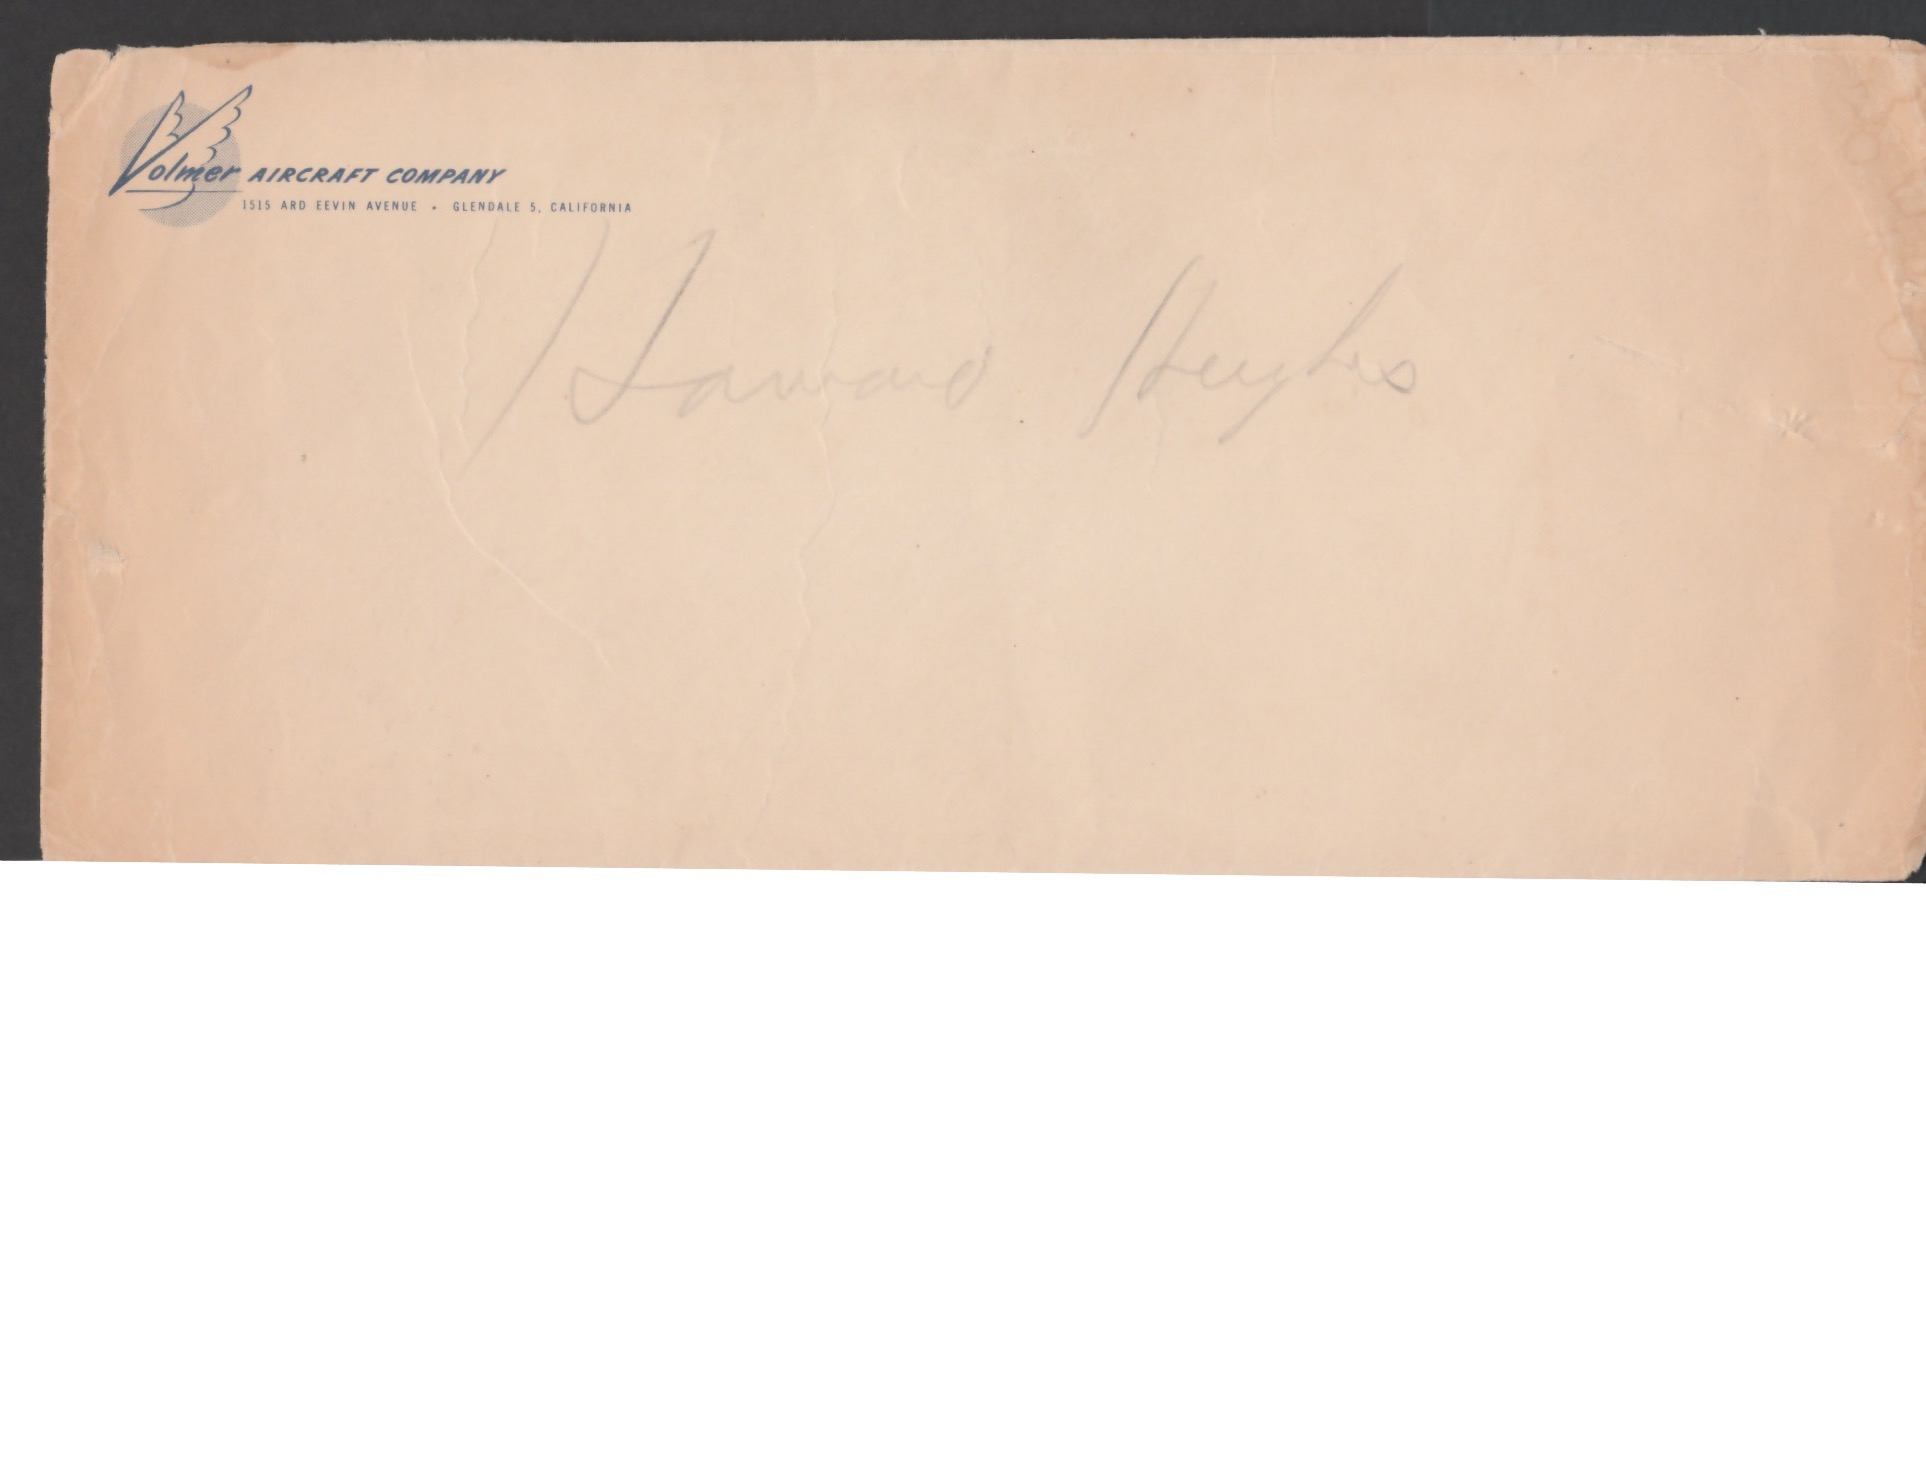 """Airmails - Russia / USA / France 1938 Printed """"Howard Hughes, New York Worlds Fair 1939"""" - Image 3 of 4"""